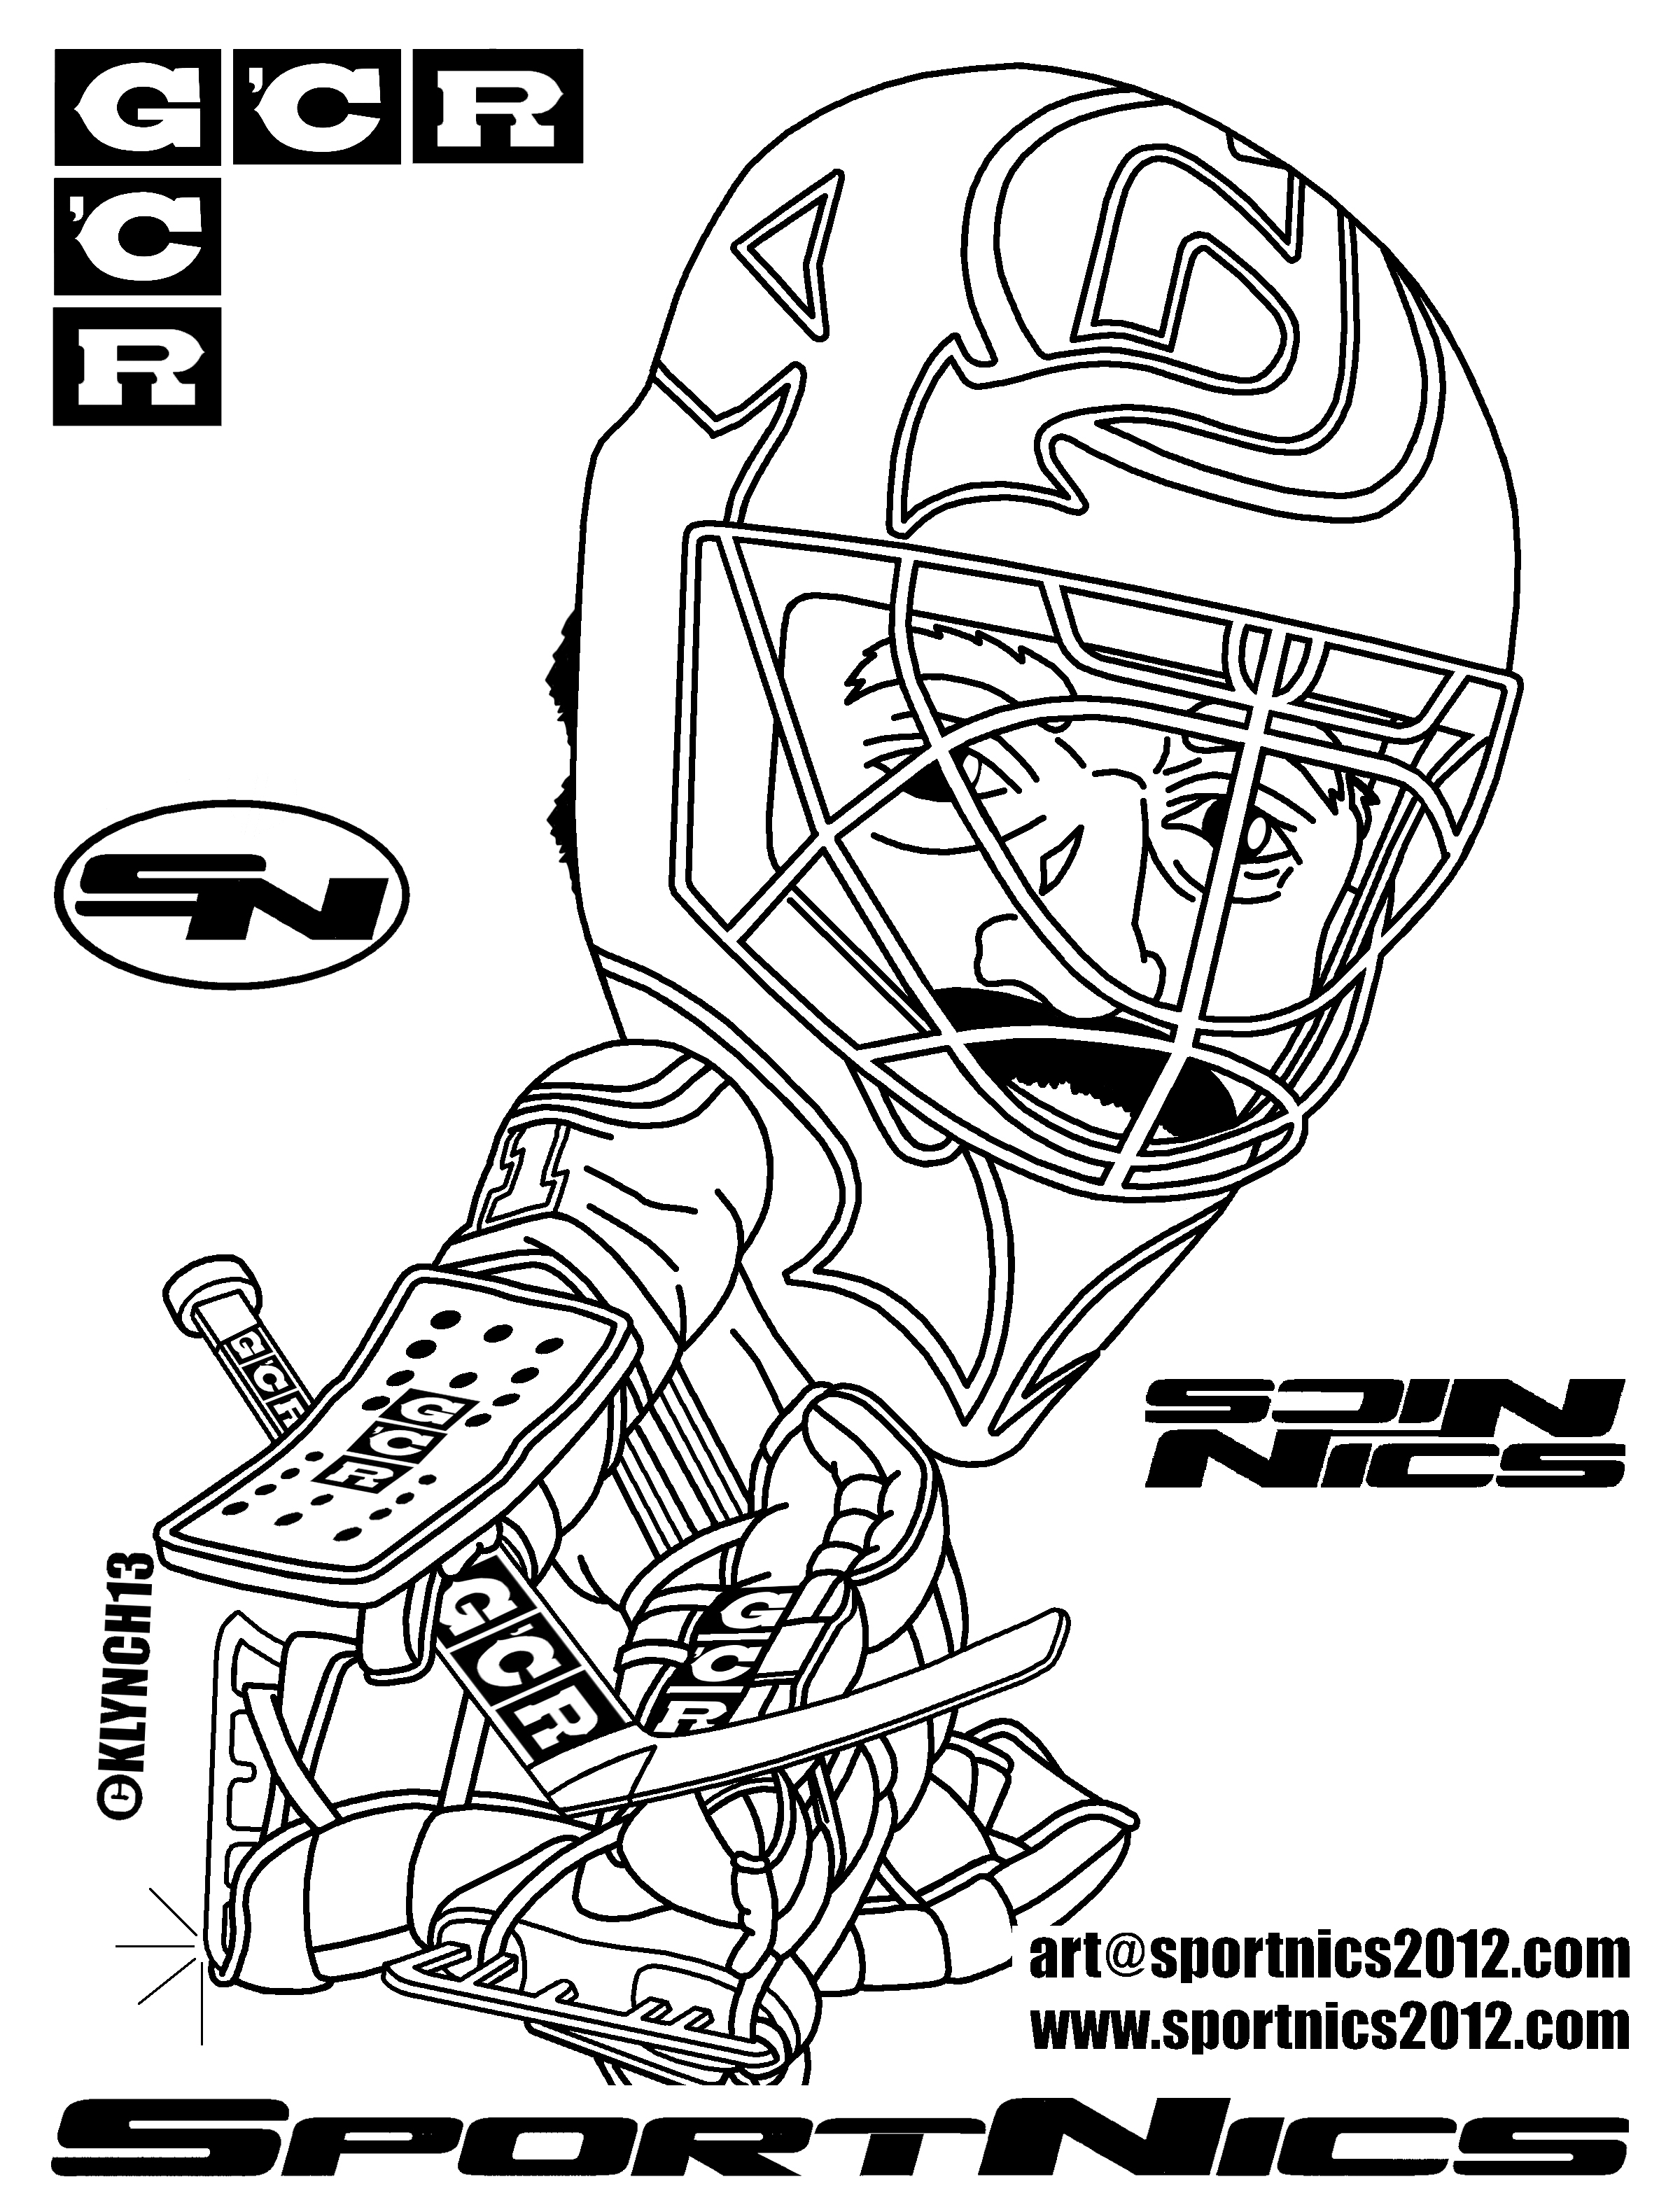 Holiday Coloring Pages » Nhl Coloring Pages Free Printable